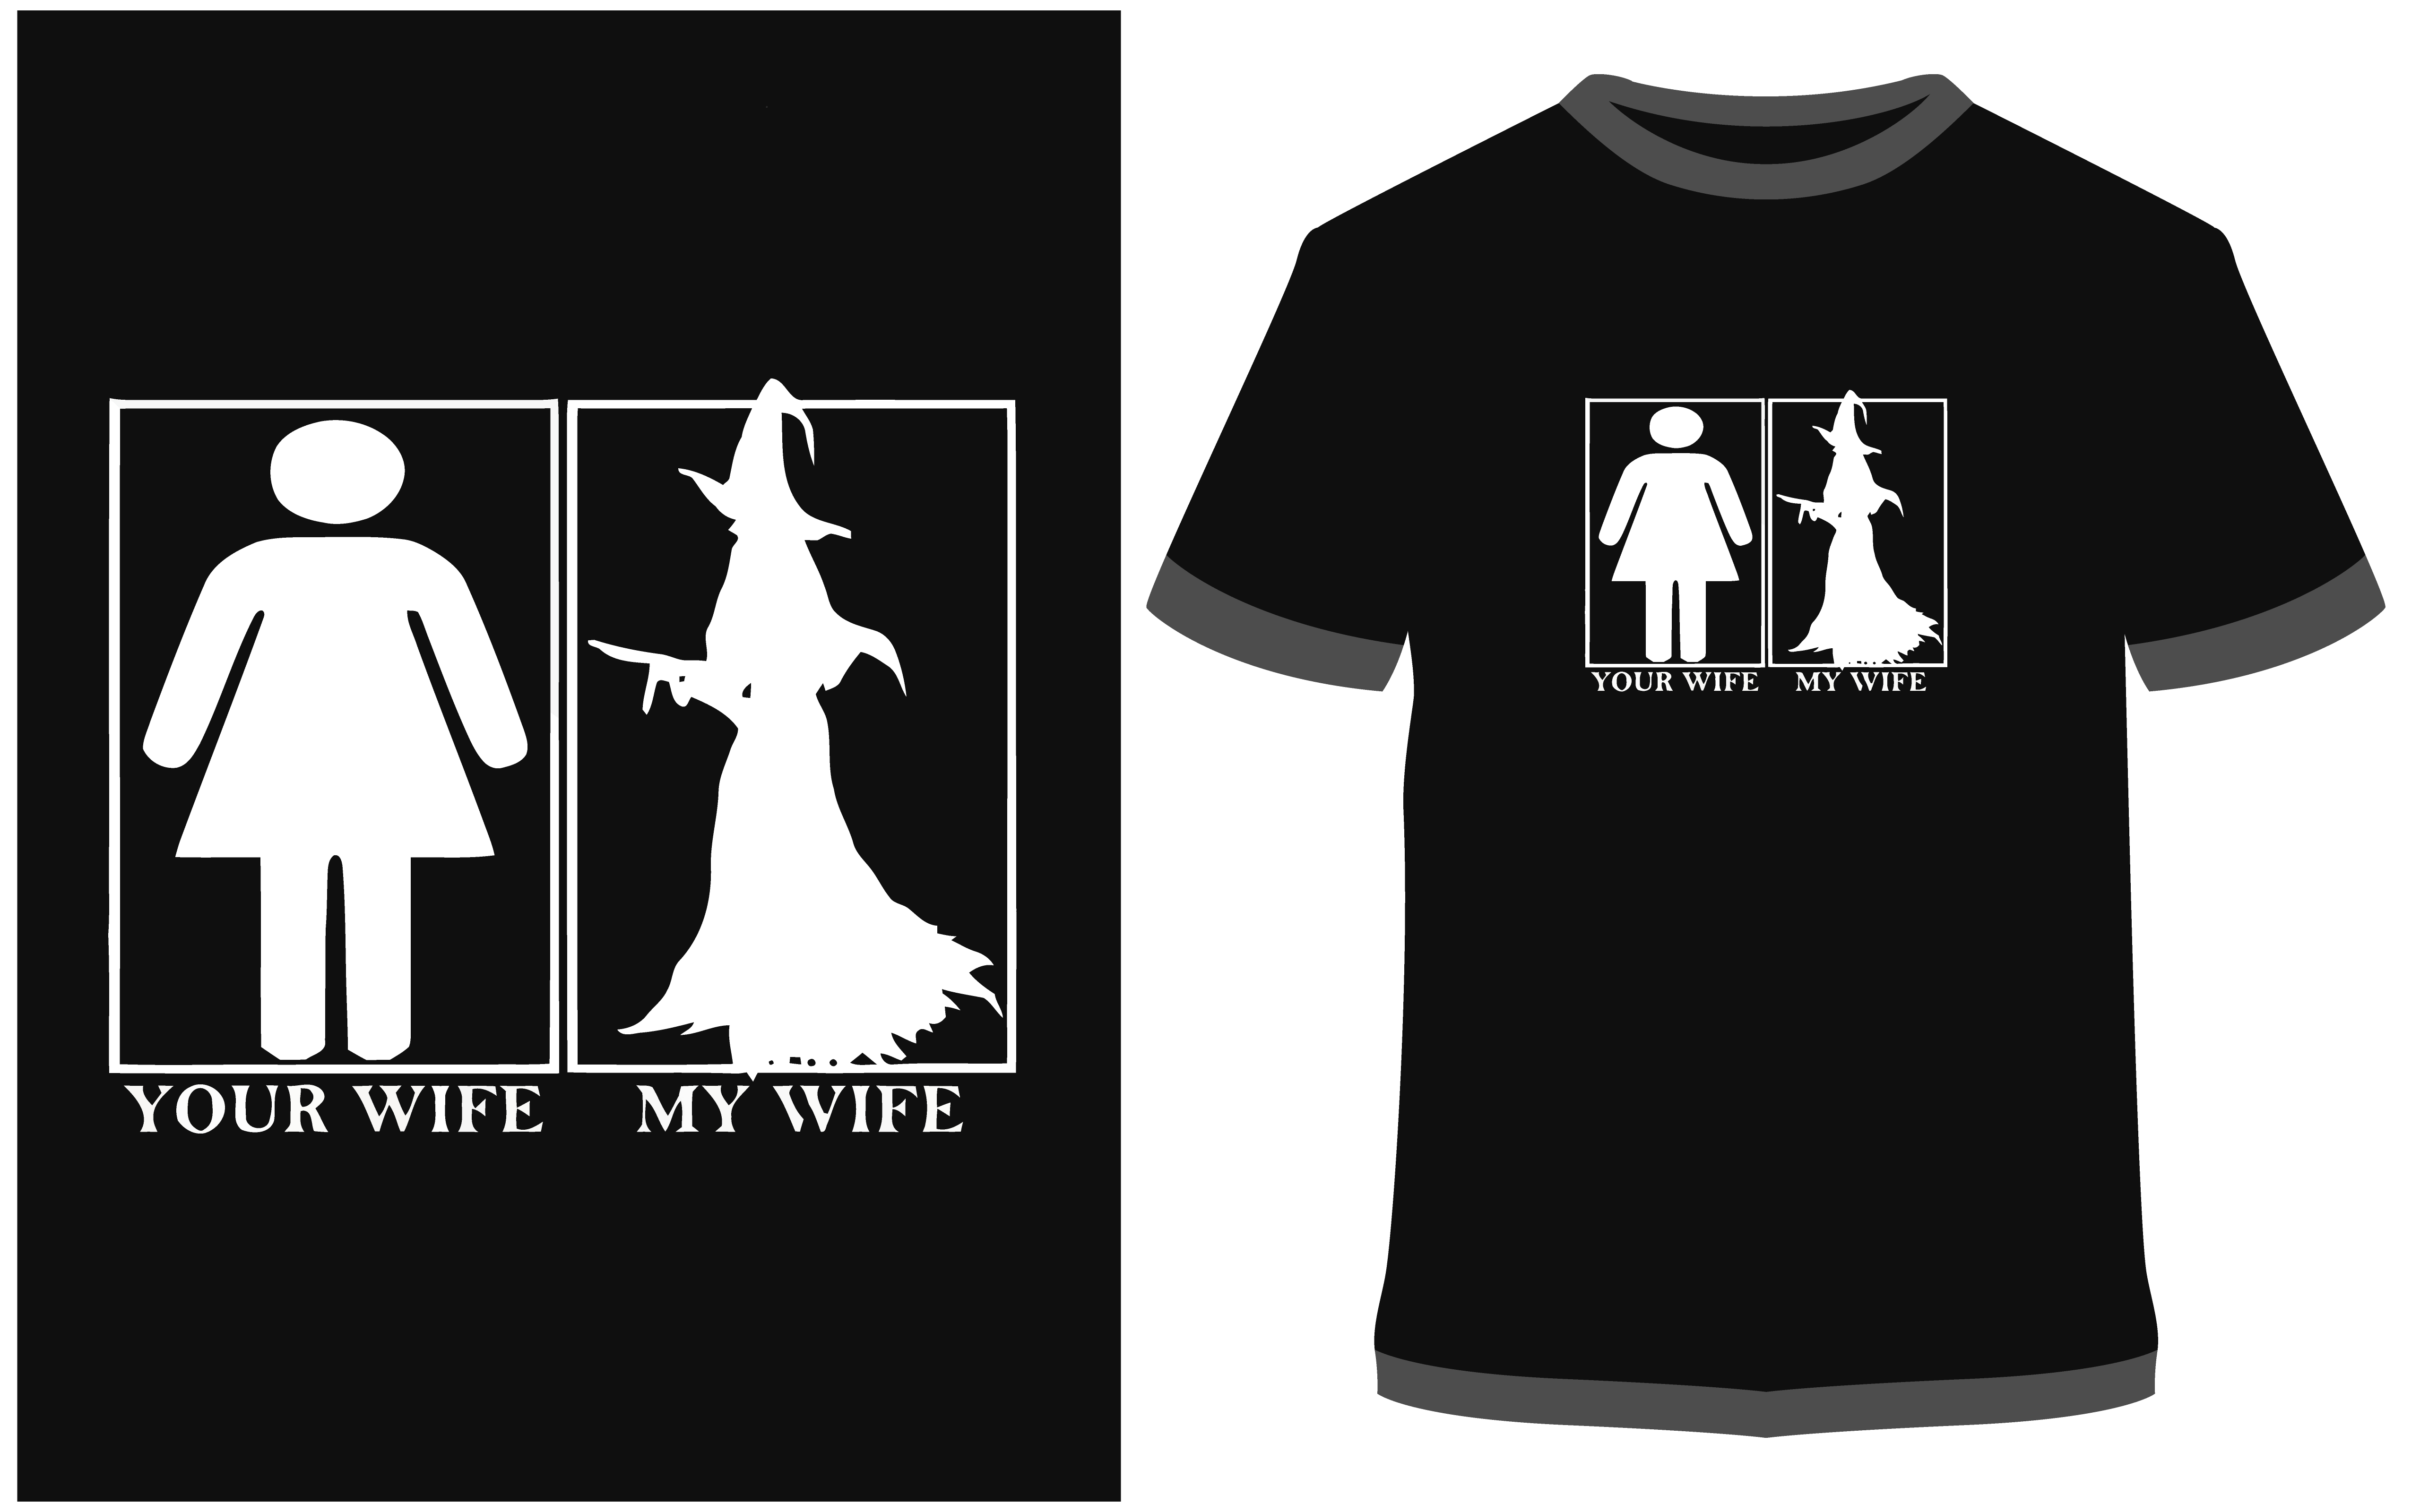 T Shirt Design Funny Halloween Shirts Graphic By Prodesigns Creative Fabrica